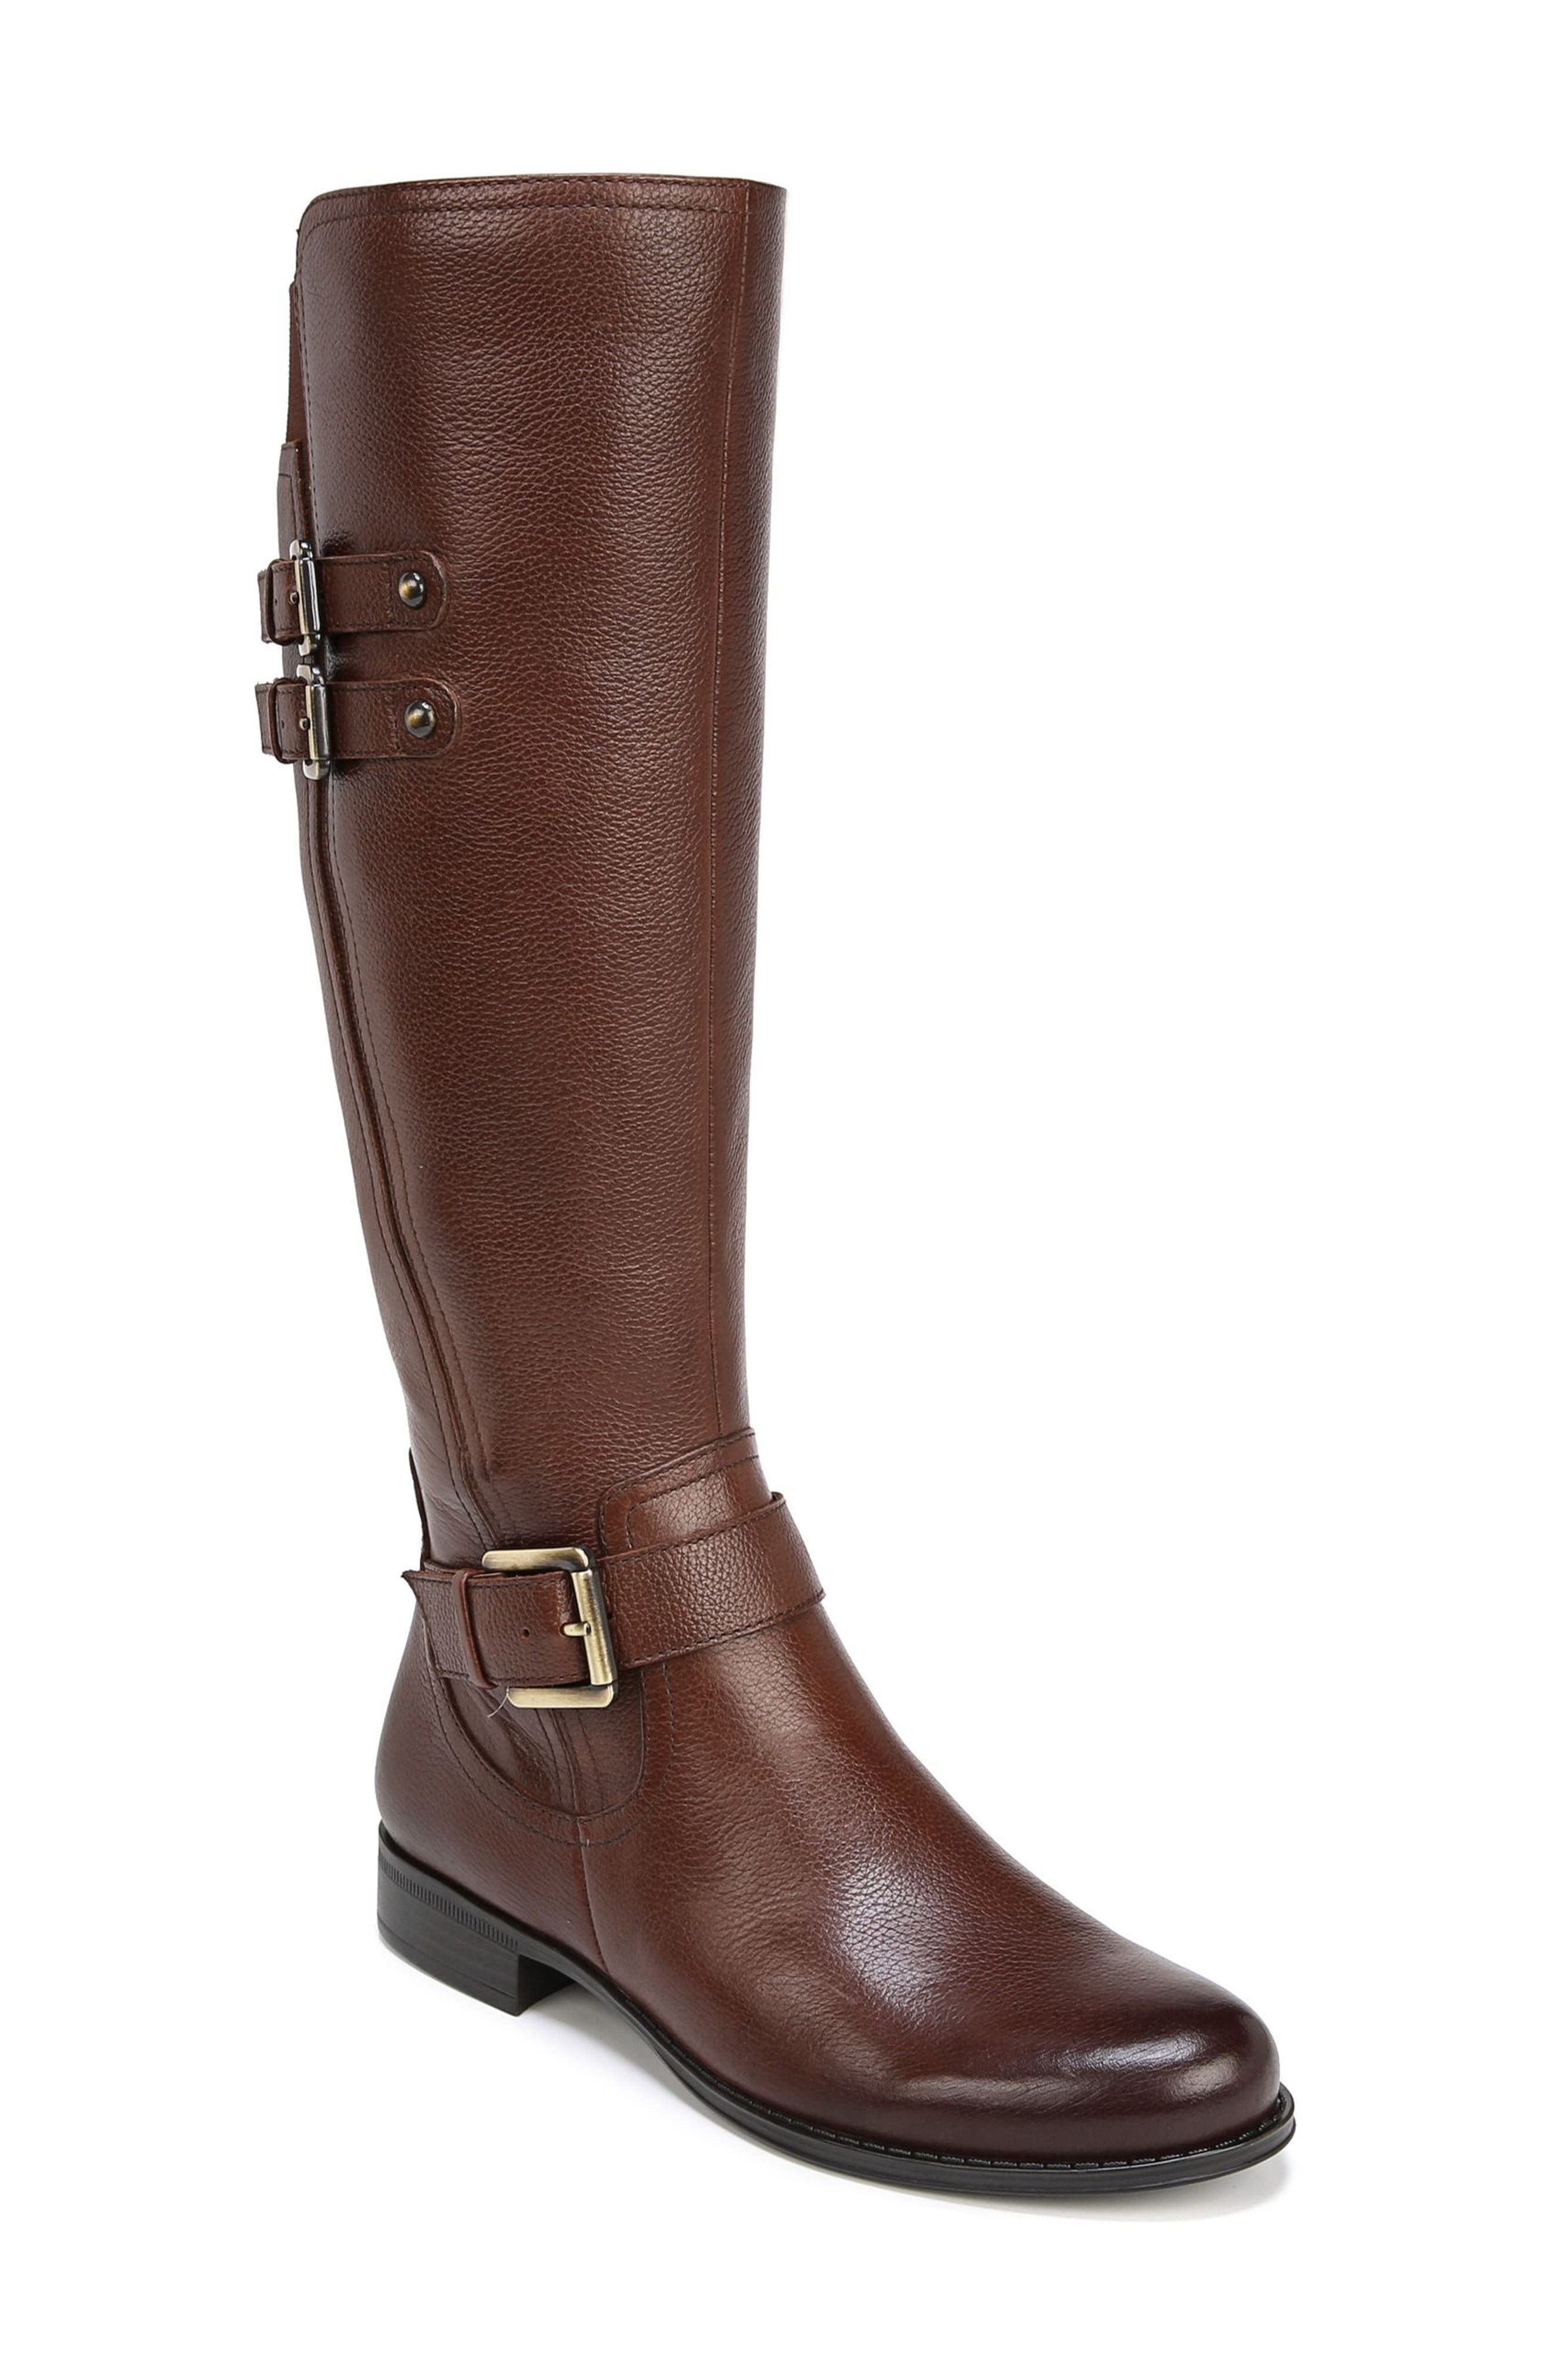 Naturalizer Jessie Knee High Riding Boot Wide Calf- Brown